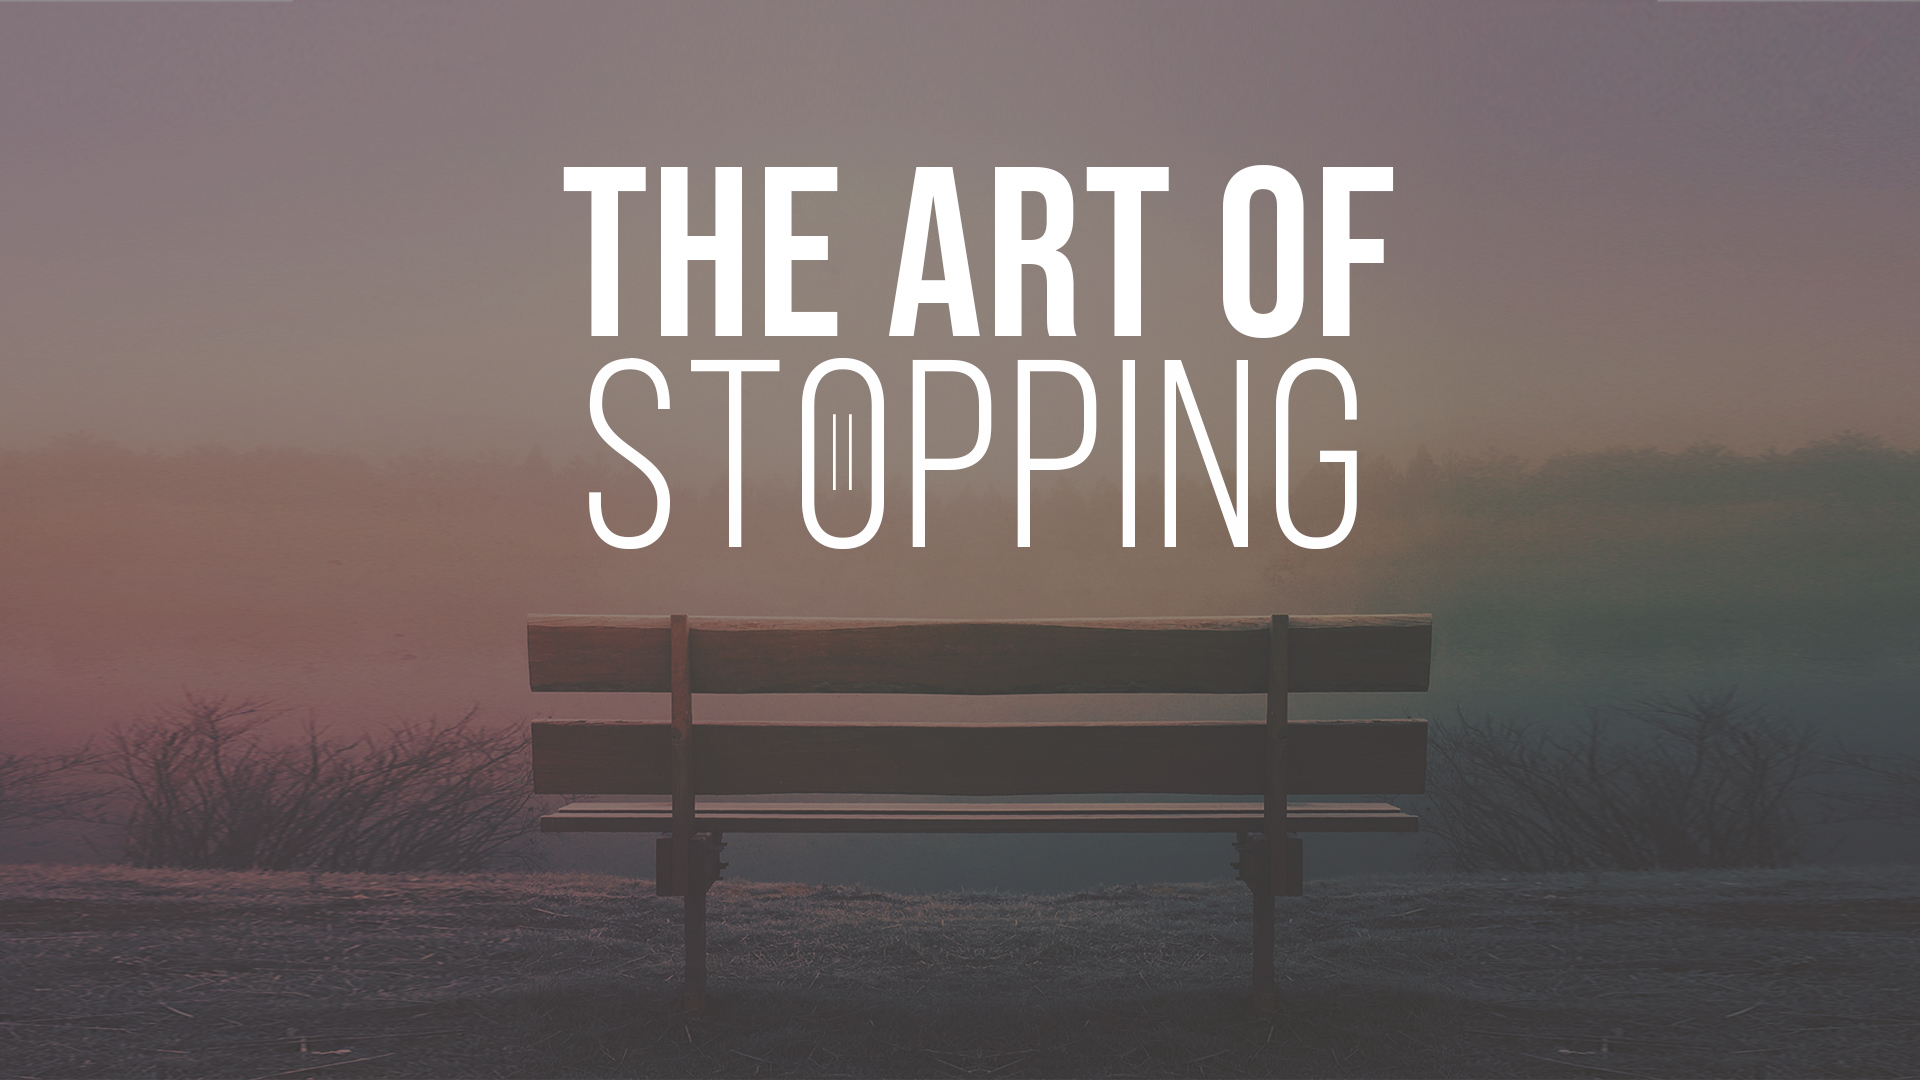 The Art of Stopping